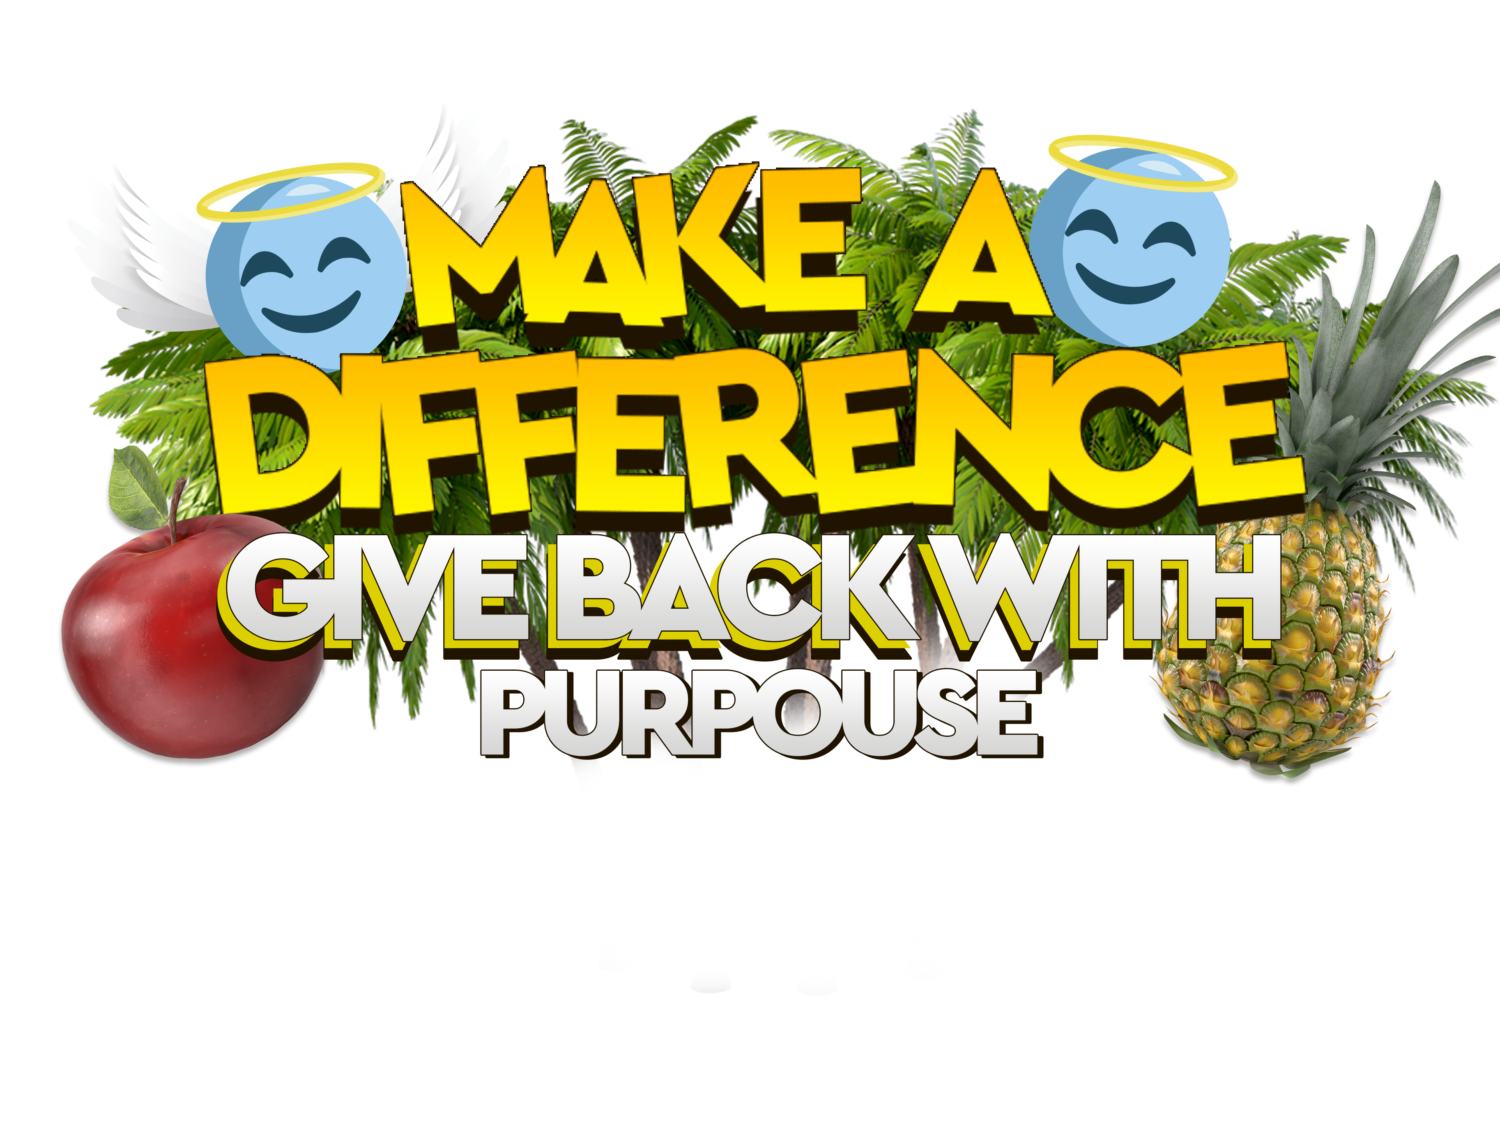 MAKE A DIFERENCE GIVE BACK WITH PURPOUSE